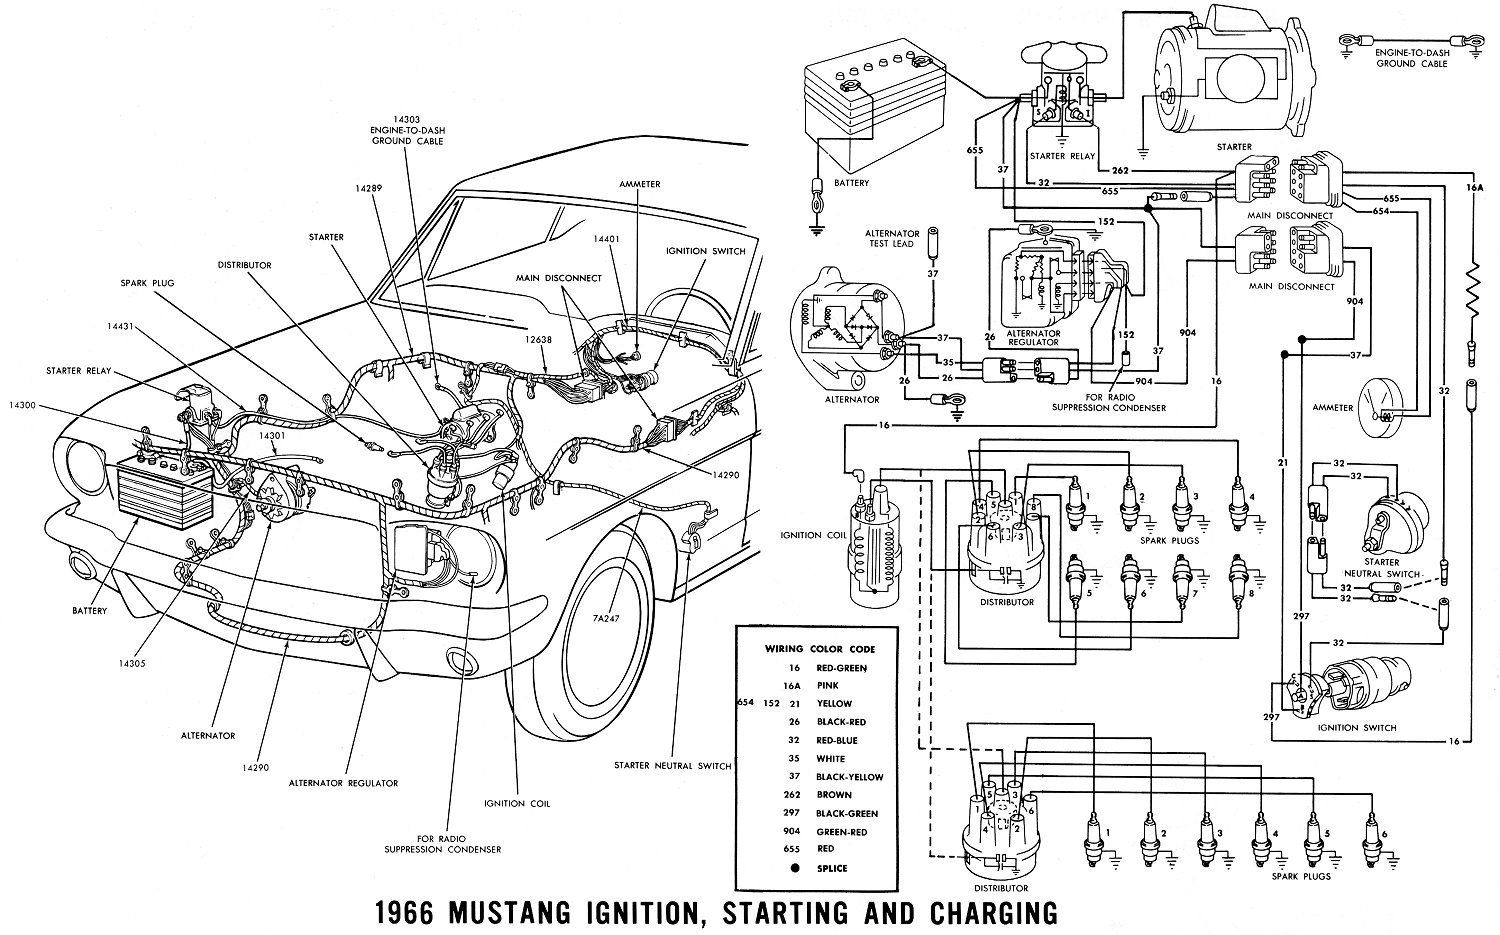 [DIAGRAM_5UK]  Pin on Wiring Diagram | 1966 Falcon Wiring Diagrams |  | Pinterest